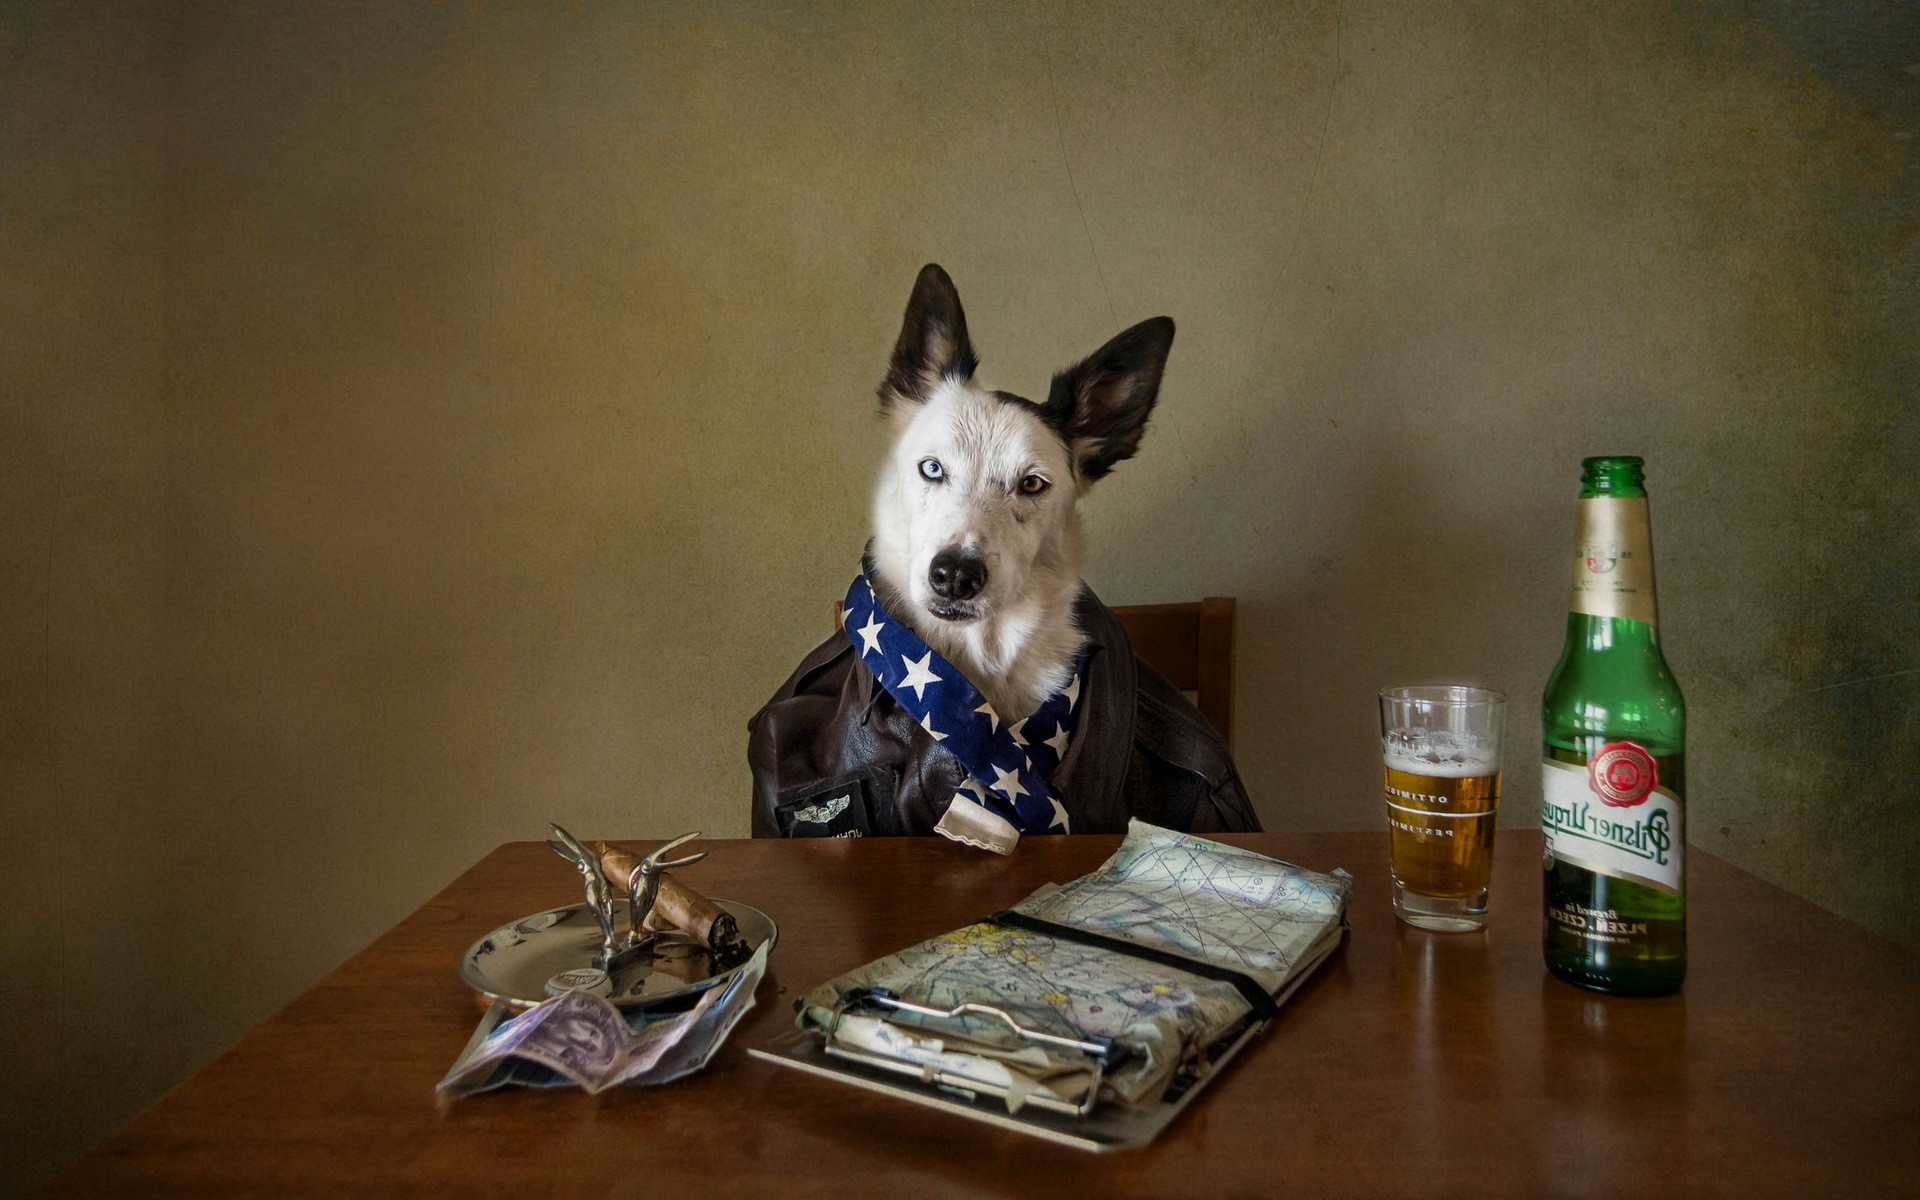 Funny Hd Animal Wallpapers Animals Dog Beer Wallpapers Hd Desktop And Mobile